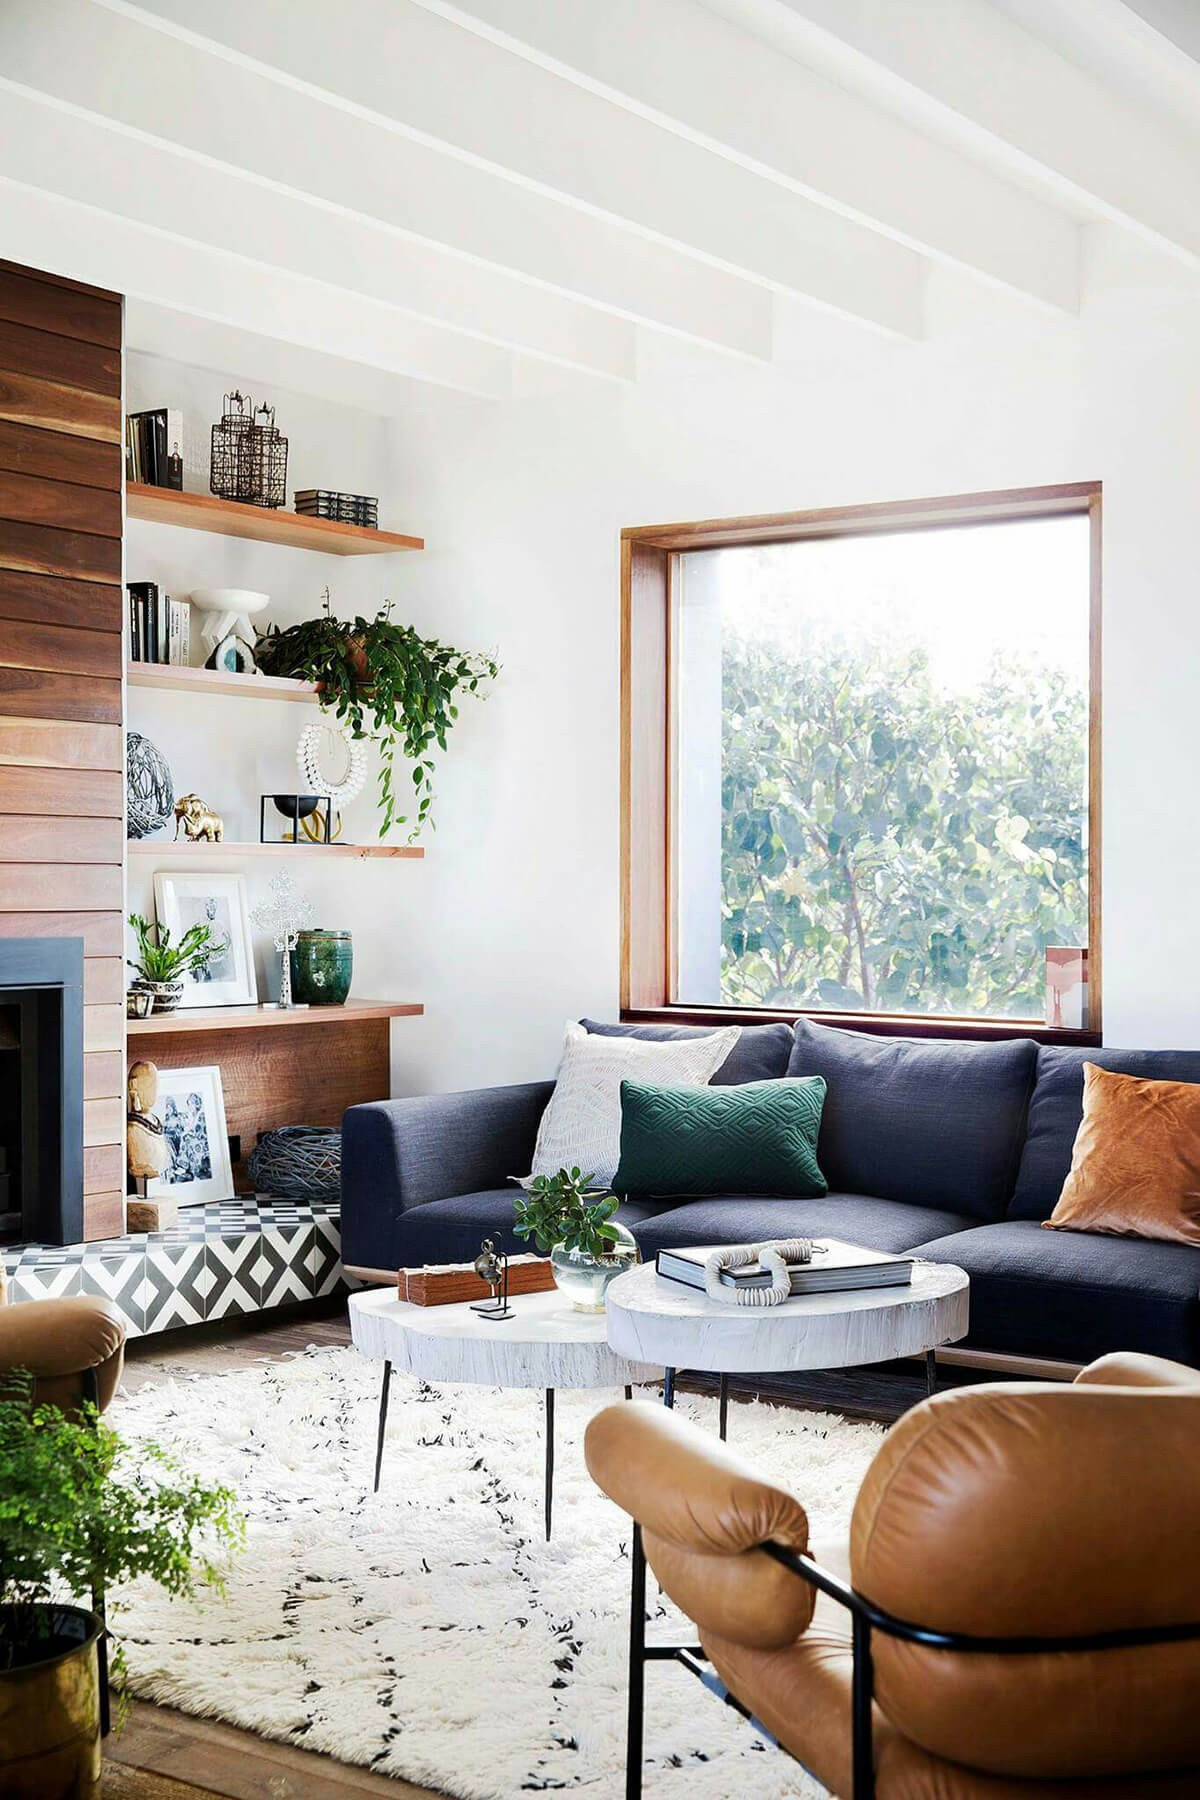 Modern Living Room Decor Ideas Beautiful 26 Best Modern Living Room Decorating Ideas and Designs for 2019